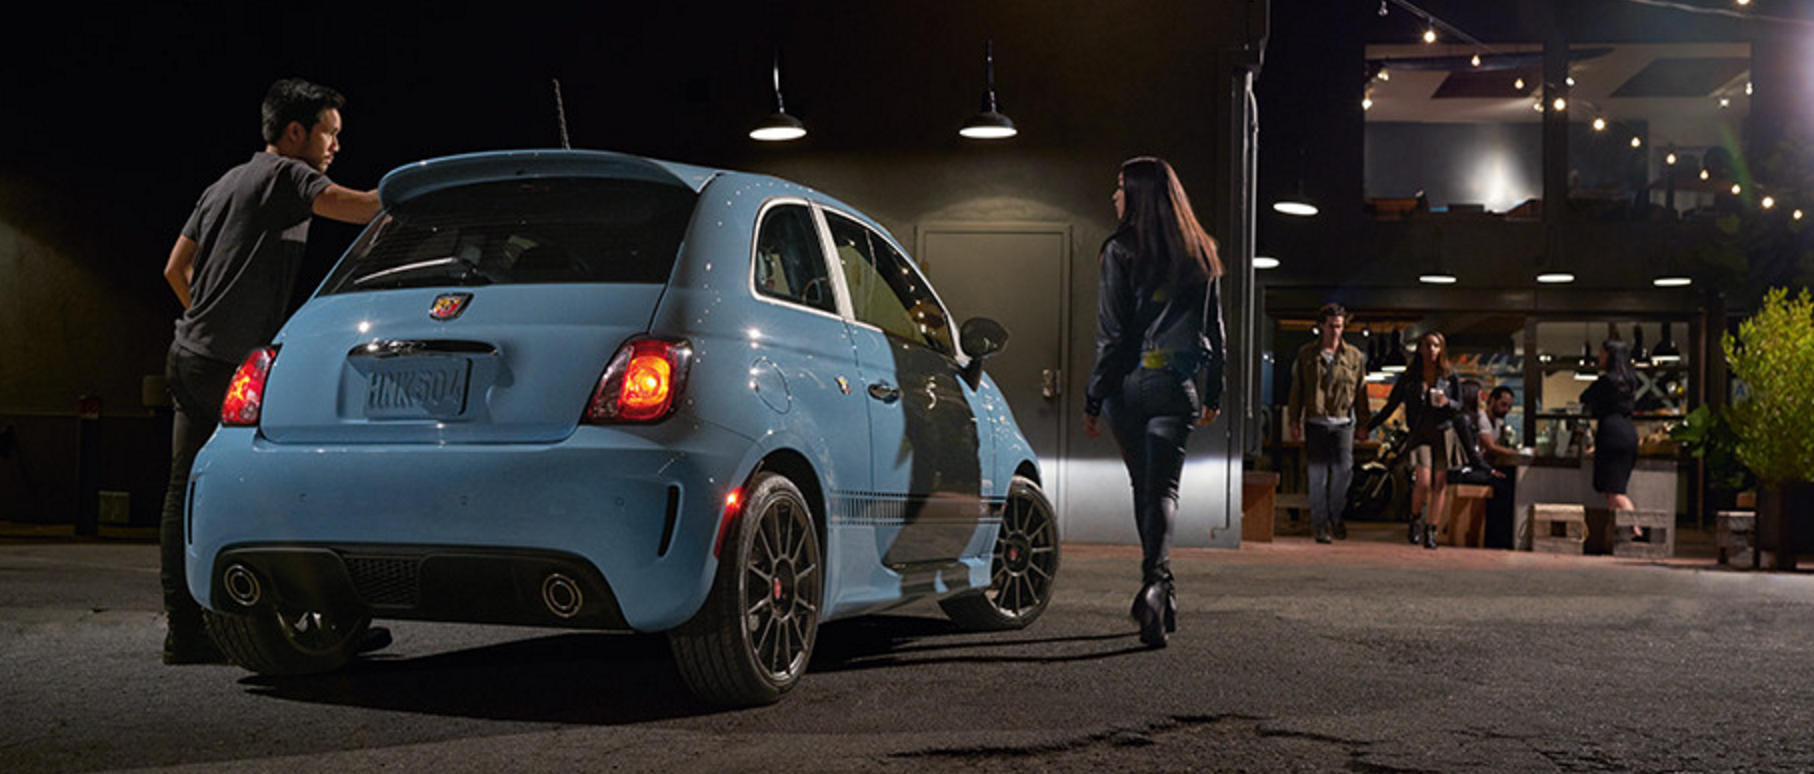 Fiat 500 Abarth7.png